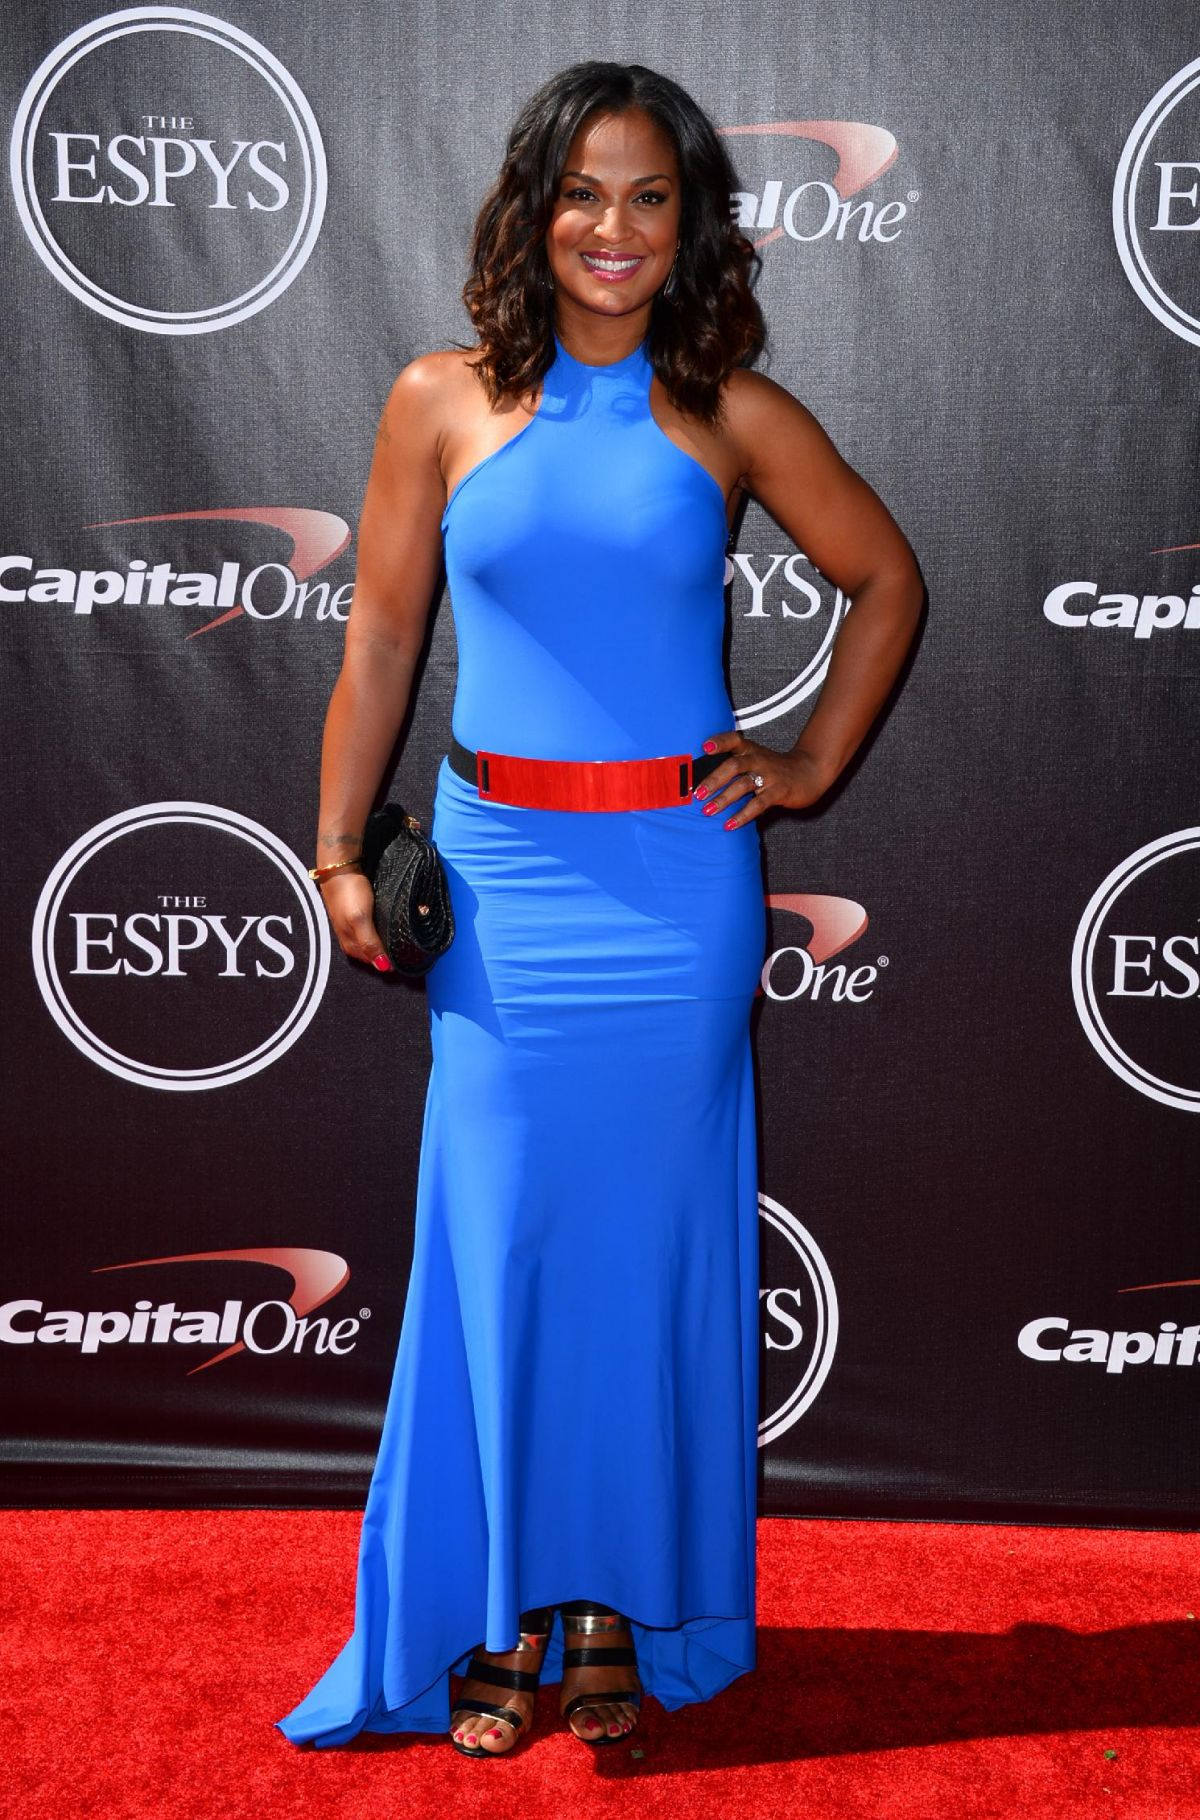 LAILA ALI at 2014 ESPYS Awards in Los Angeles